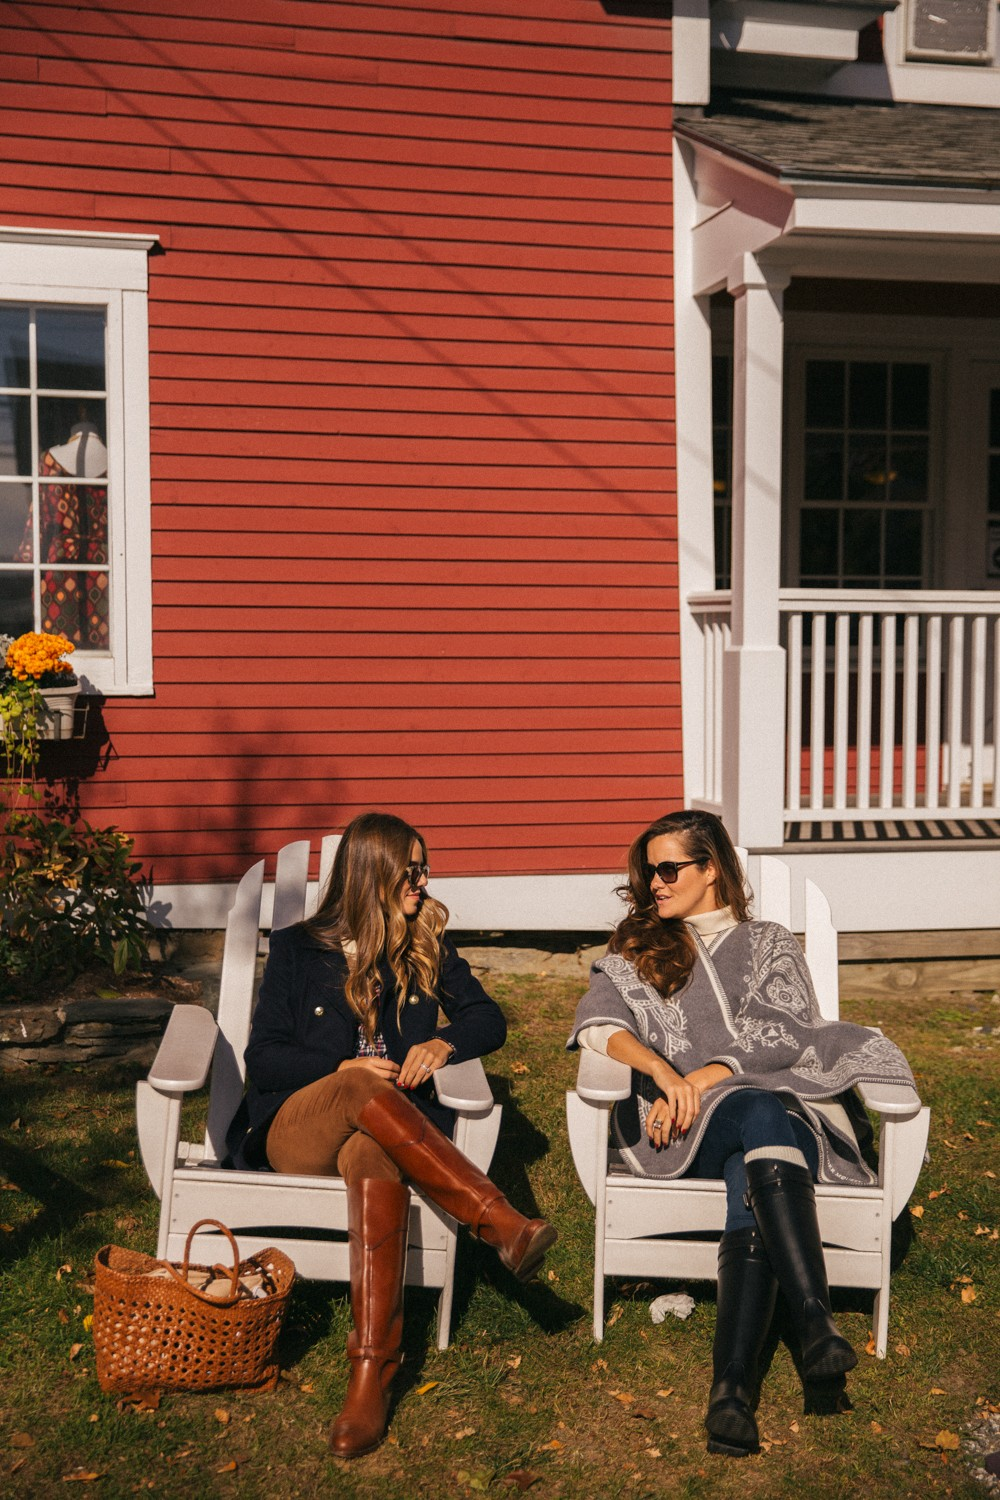 vermont-fall-32